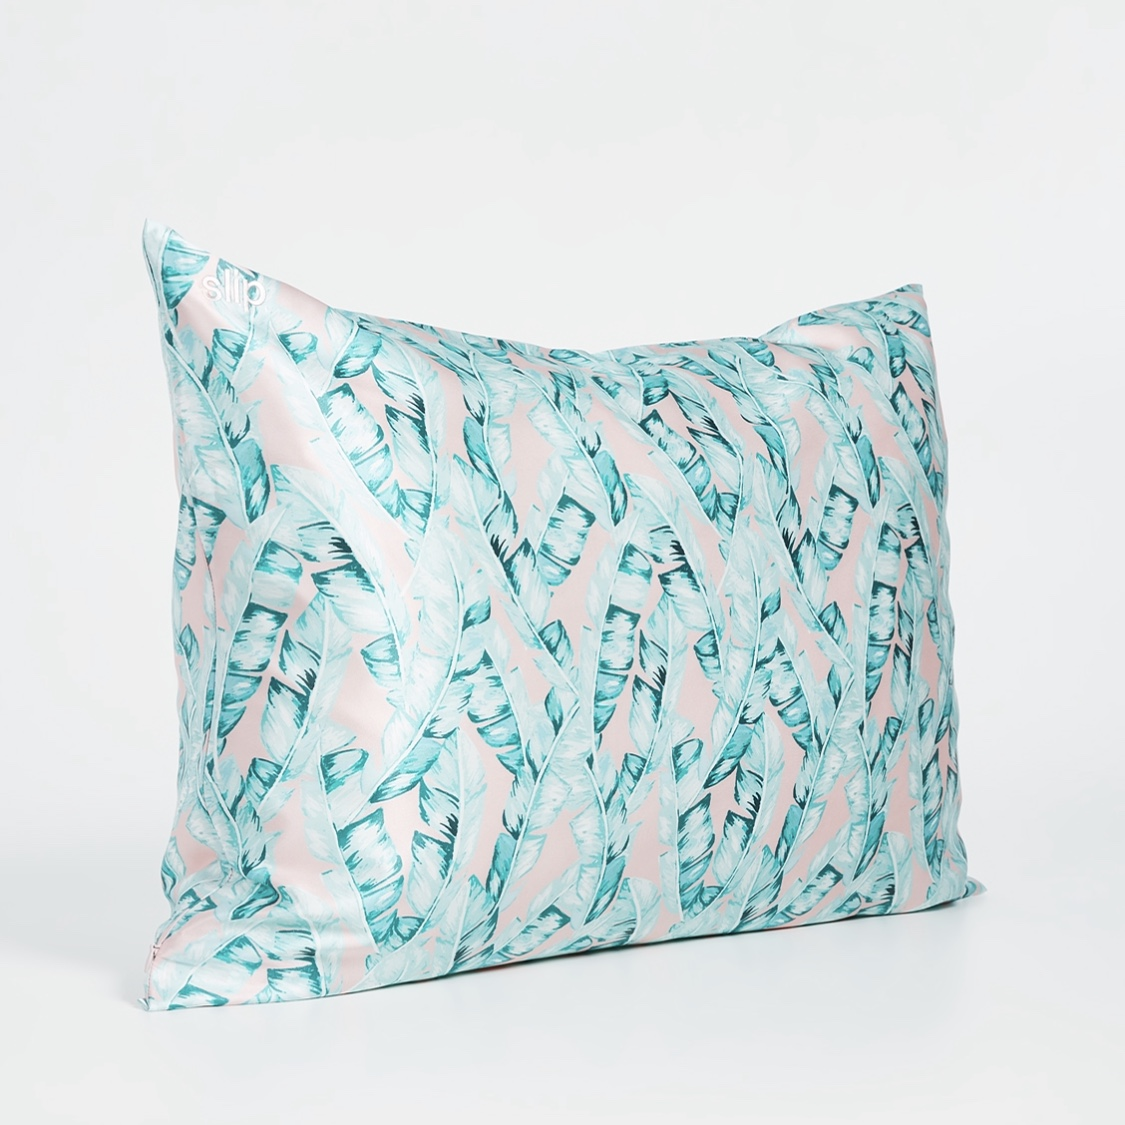 Slipsilk Pillowcase in Cali Nights $85